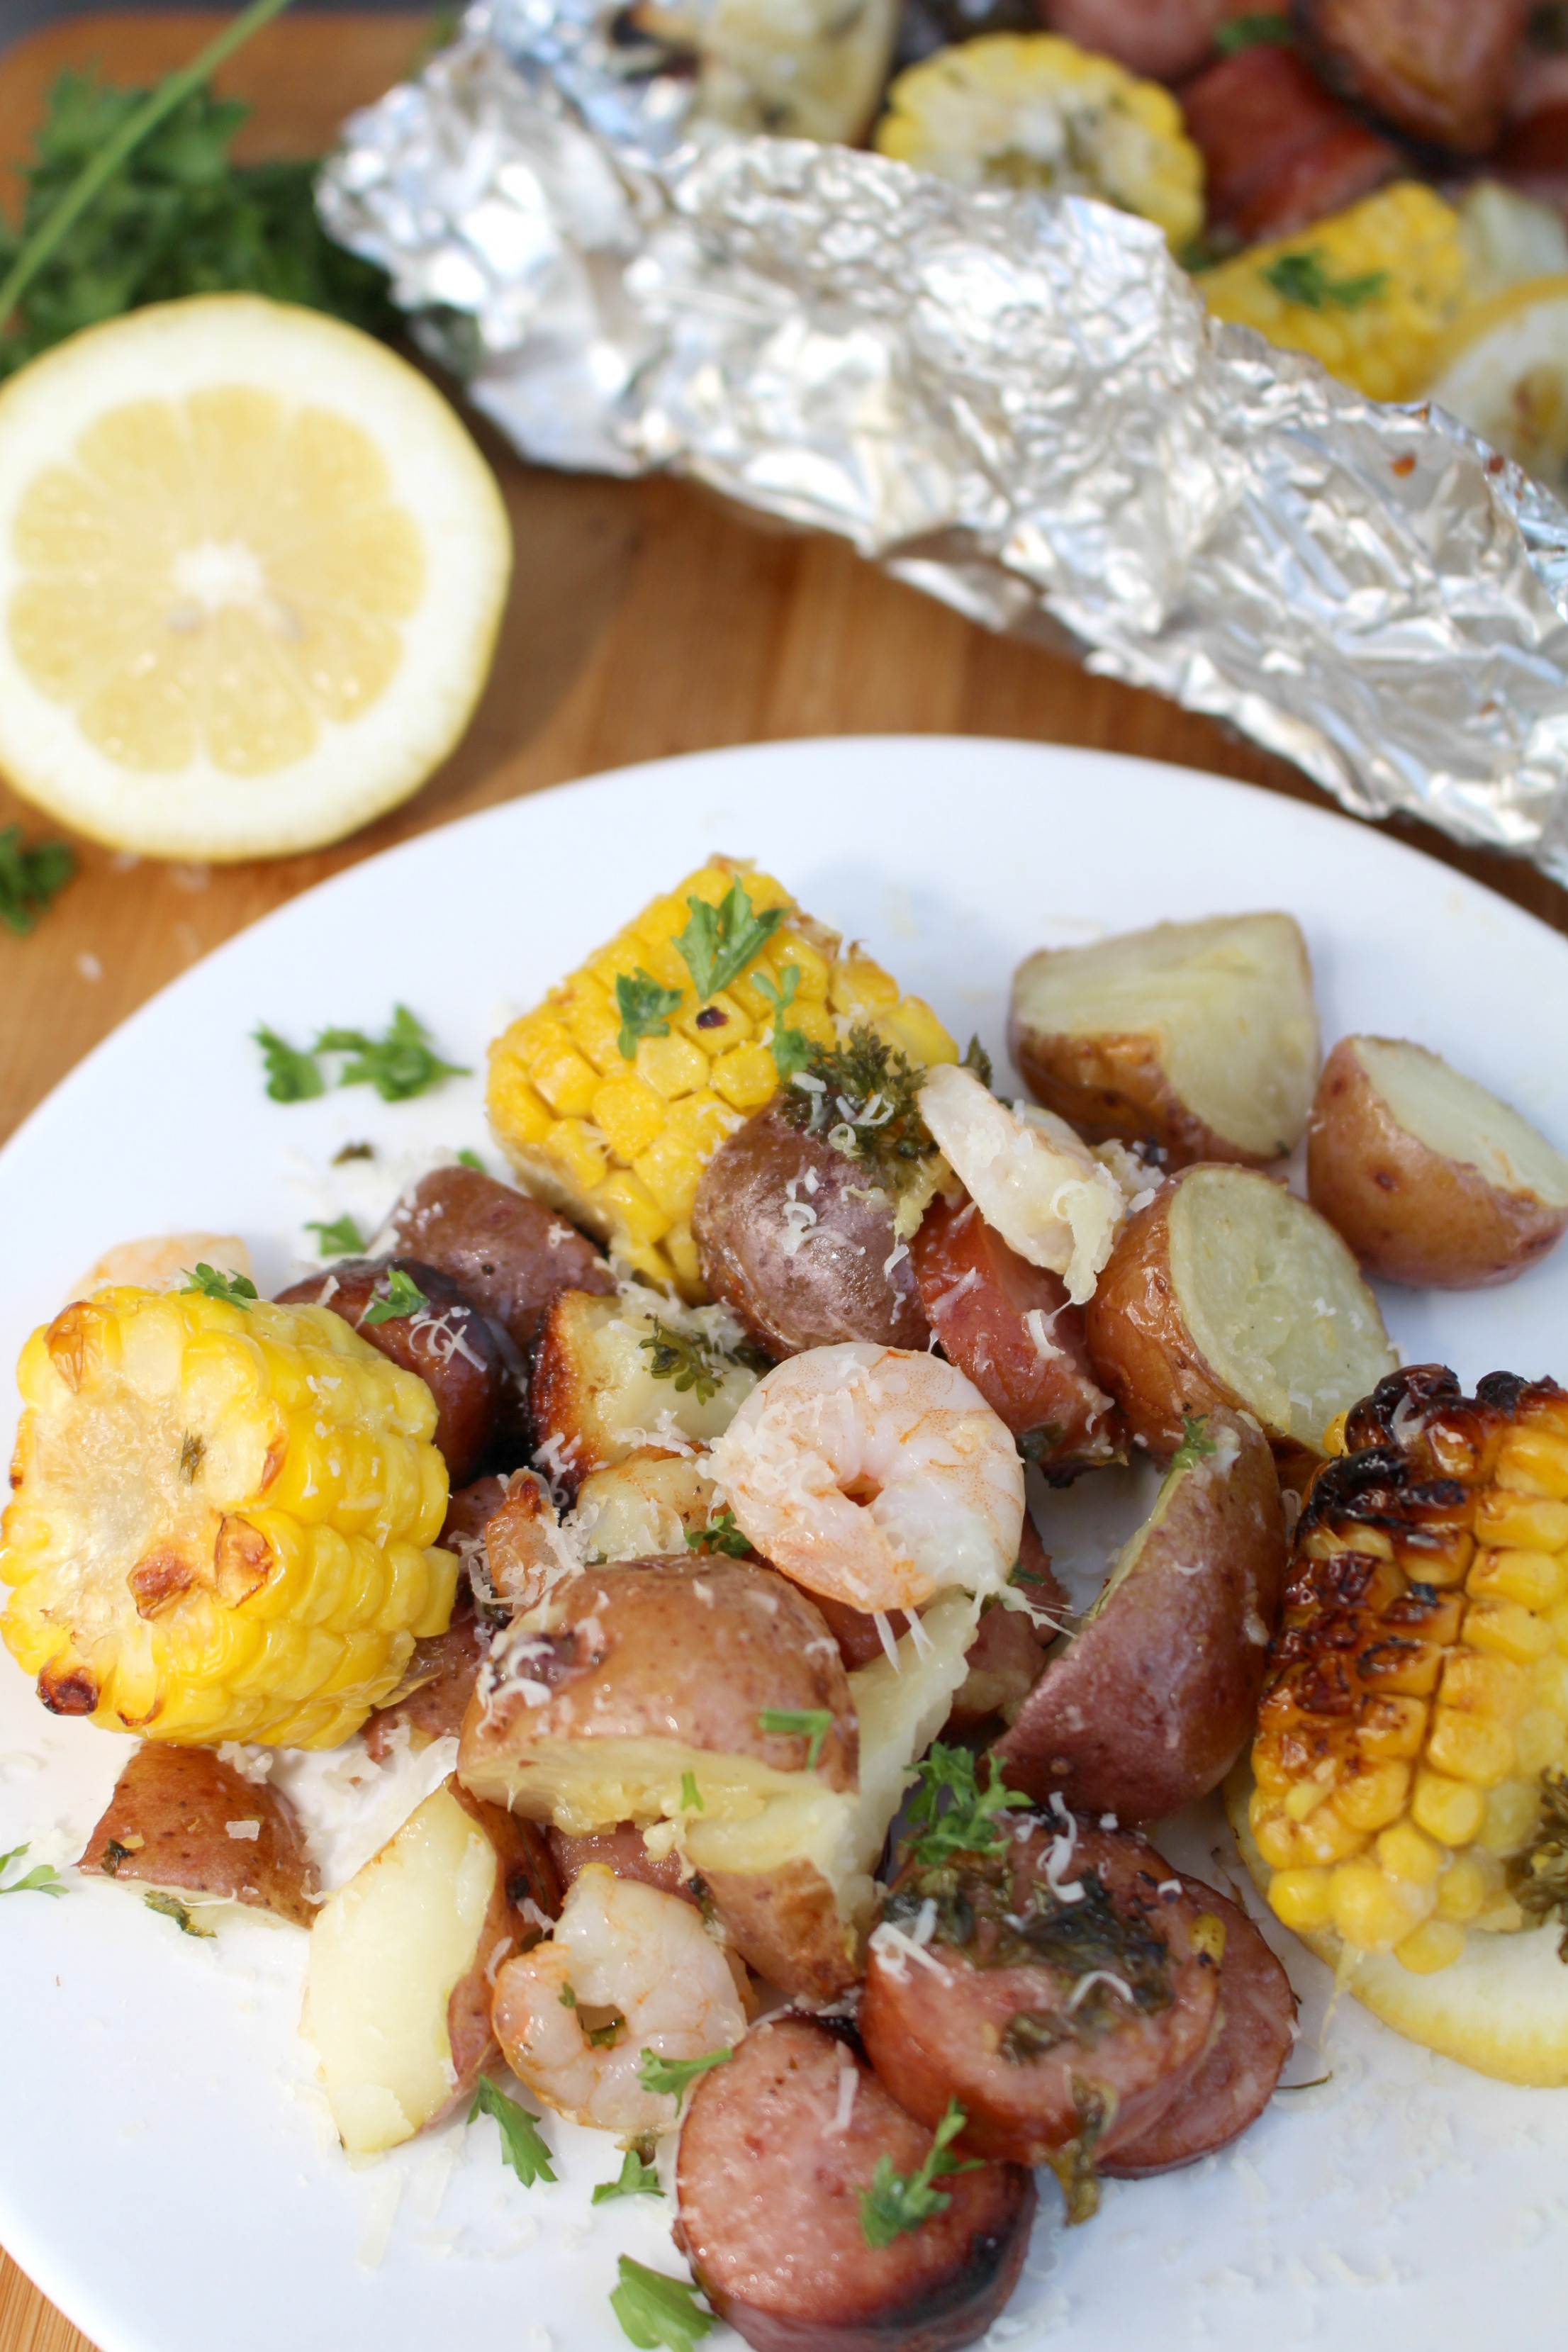 Grilled Shrimp & Smoked Sausage Foil Packs